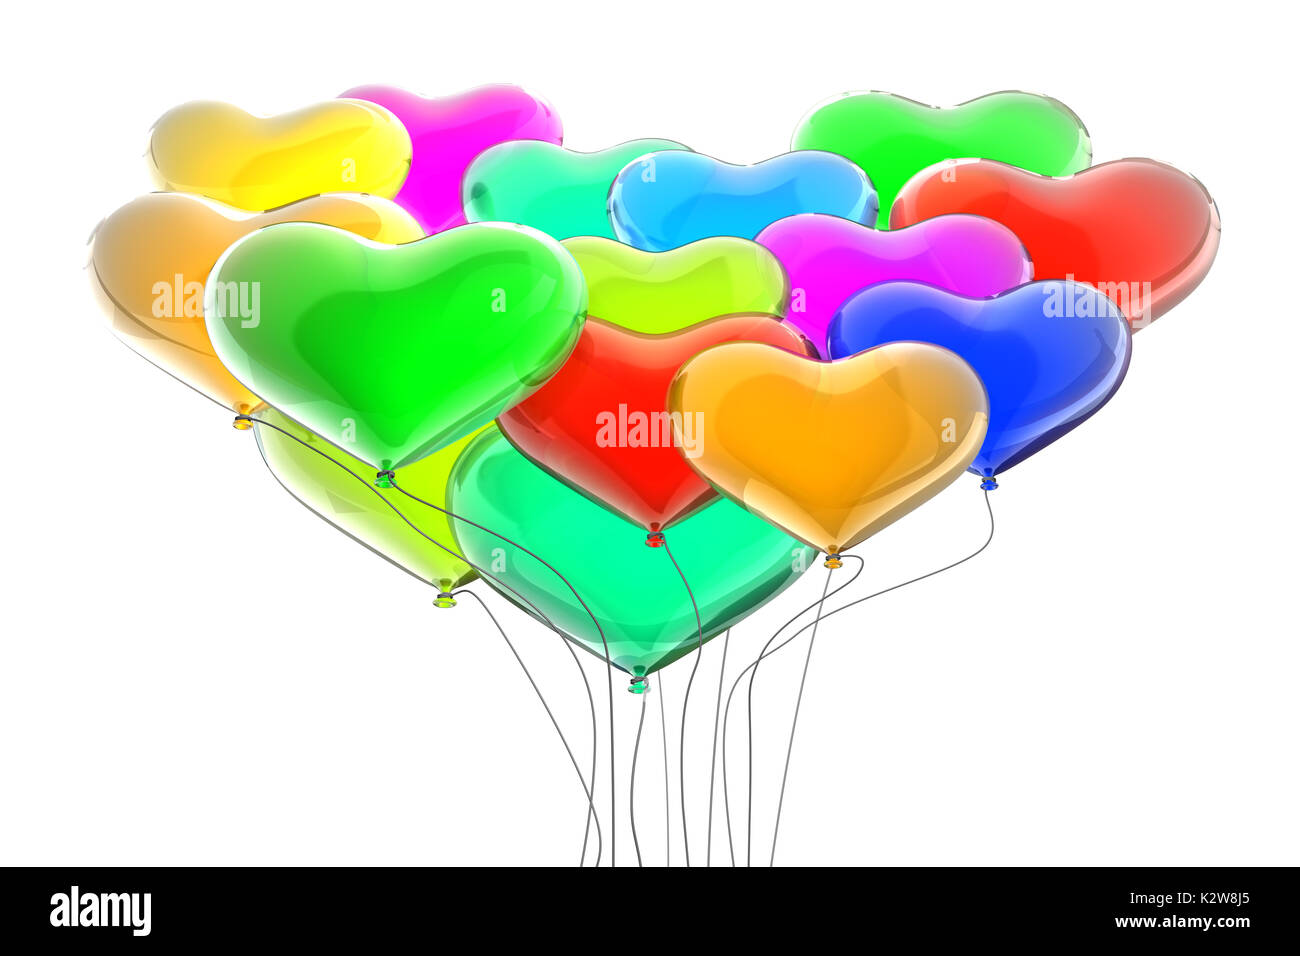 Rainbow colors balloons 3d rendering - Stock Image